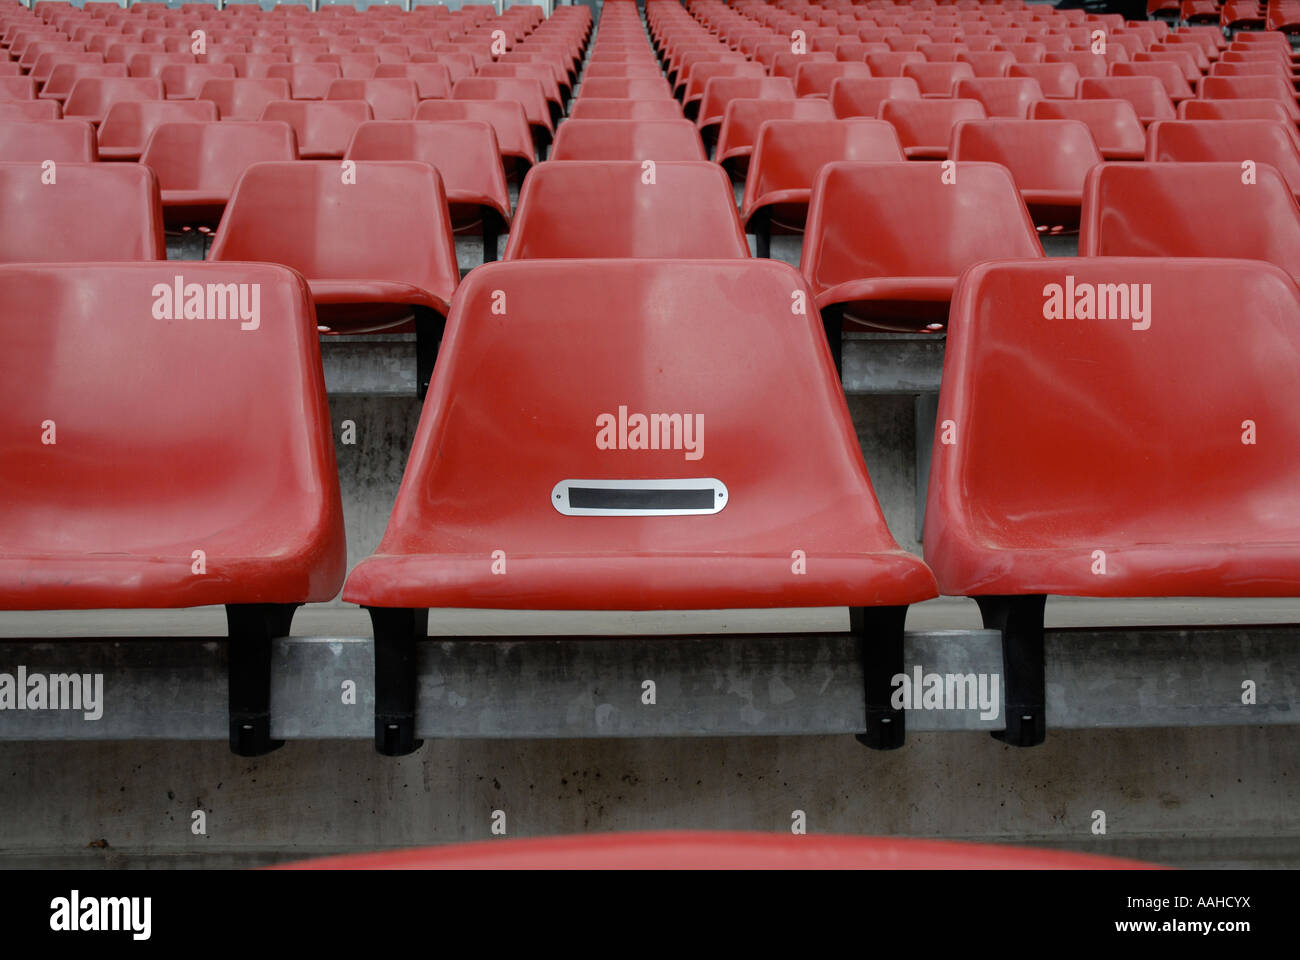 Empty red seats at the RheinEnergie Stadion, Cologne, Germany – Home of FC Koln. - Stock Image